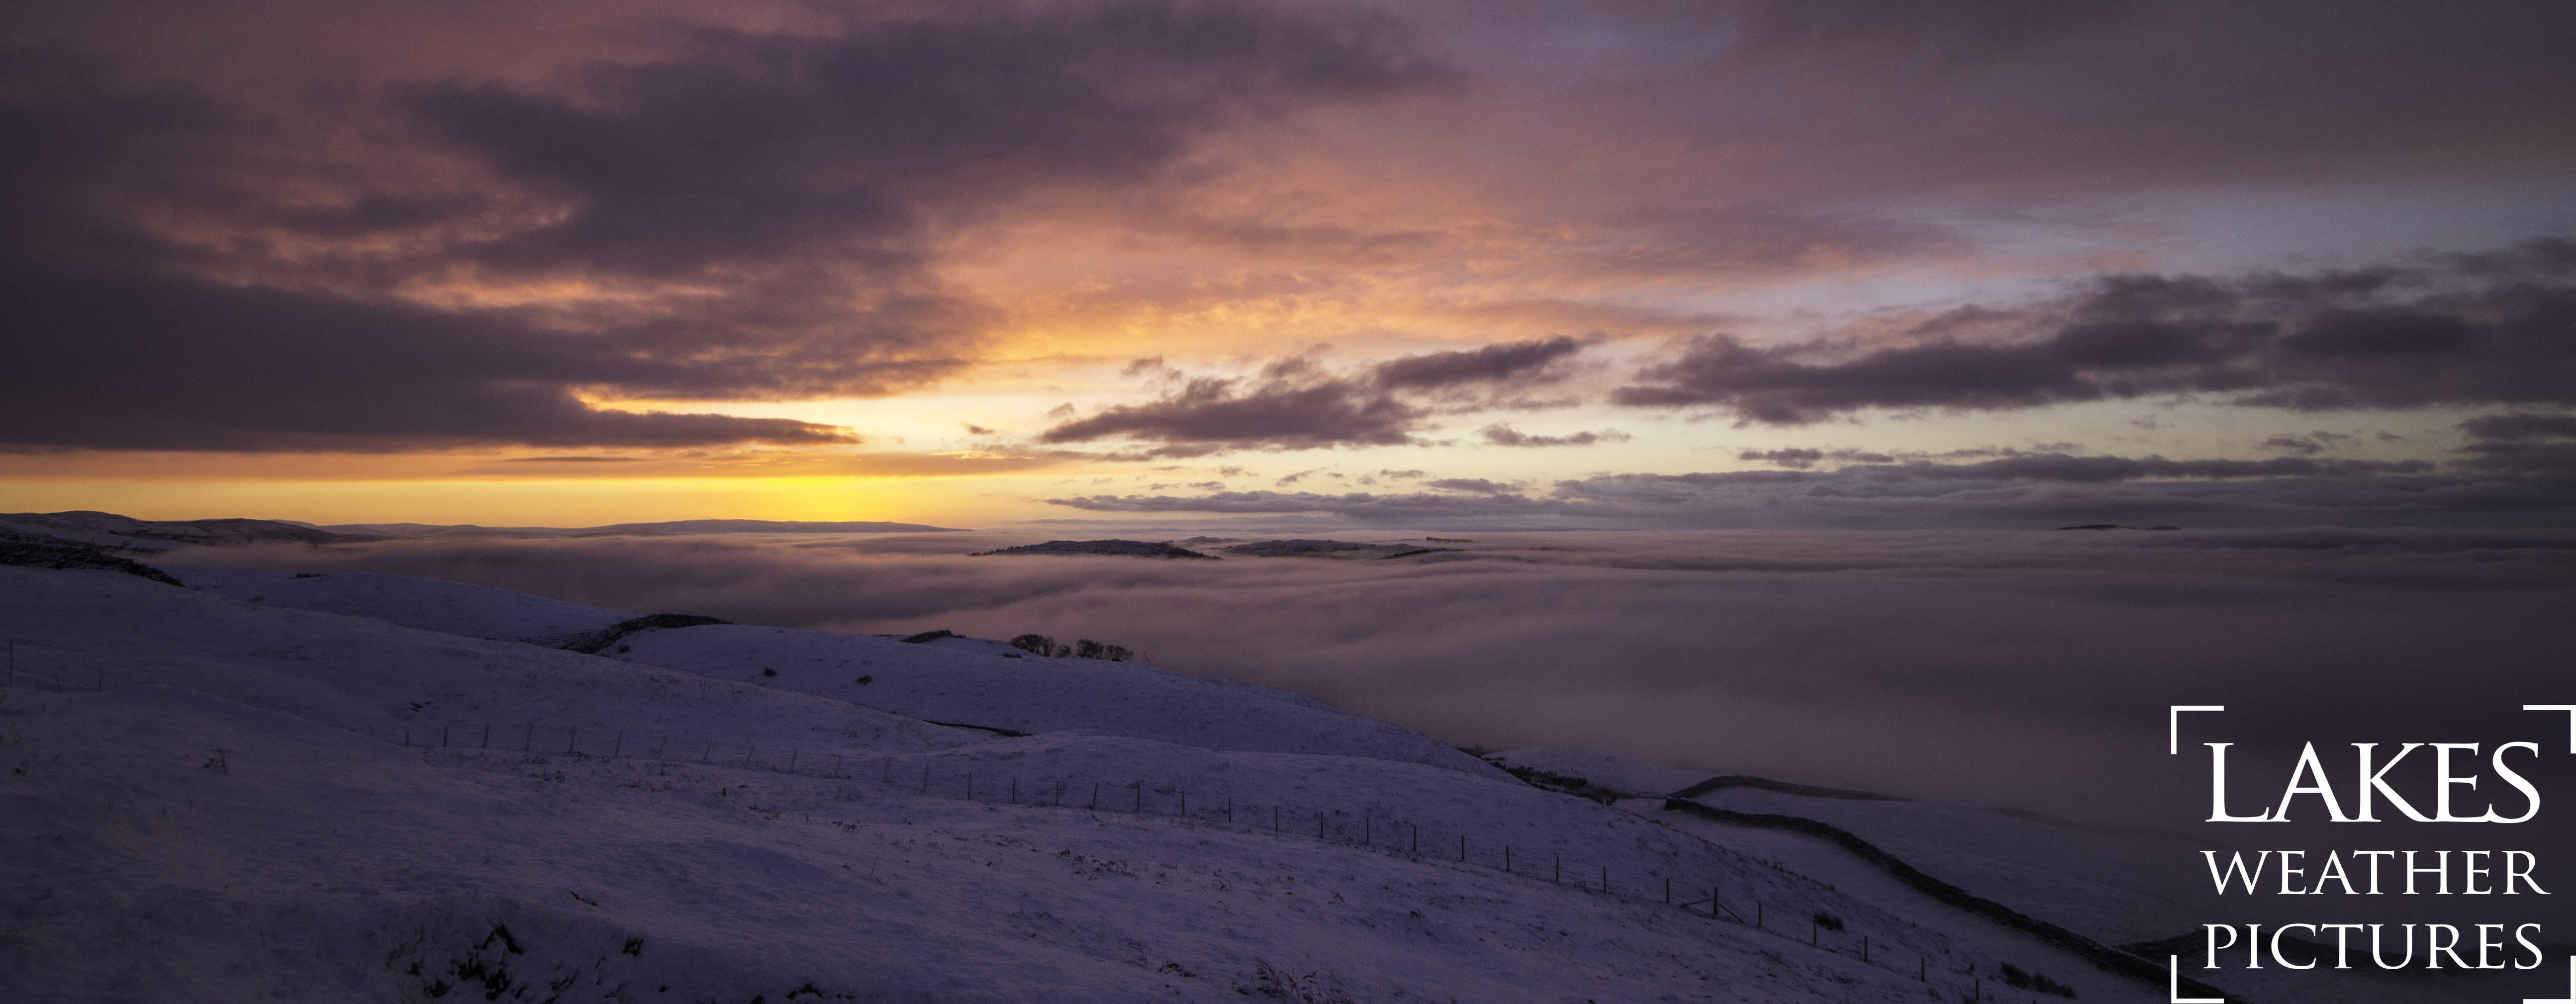 Mountains | Lakes Weather Pictures